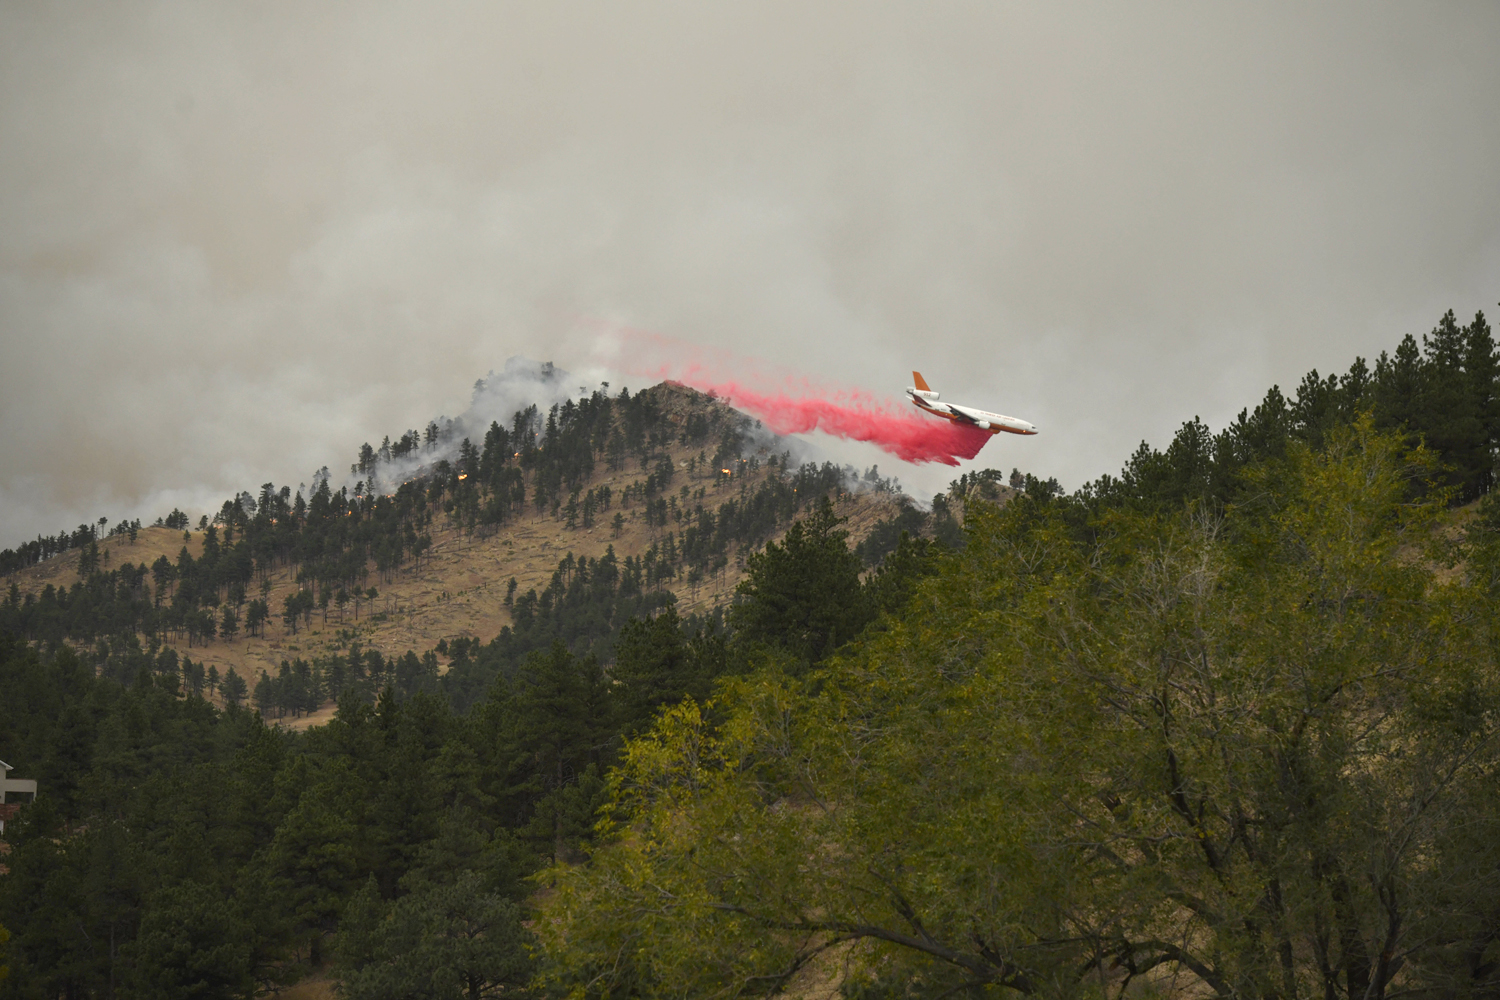 A slurry bomber drops retardant over the CalWood fire near Buckingham Park northwest of Boulder